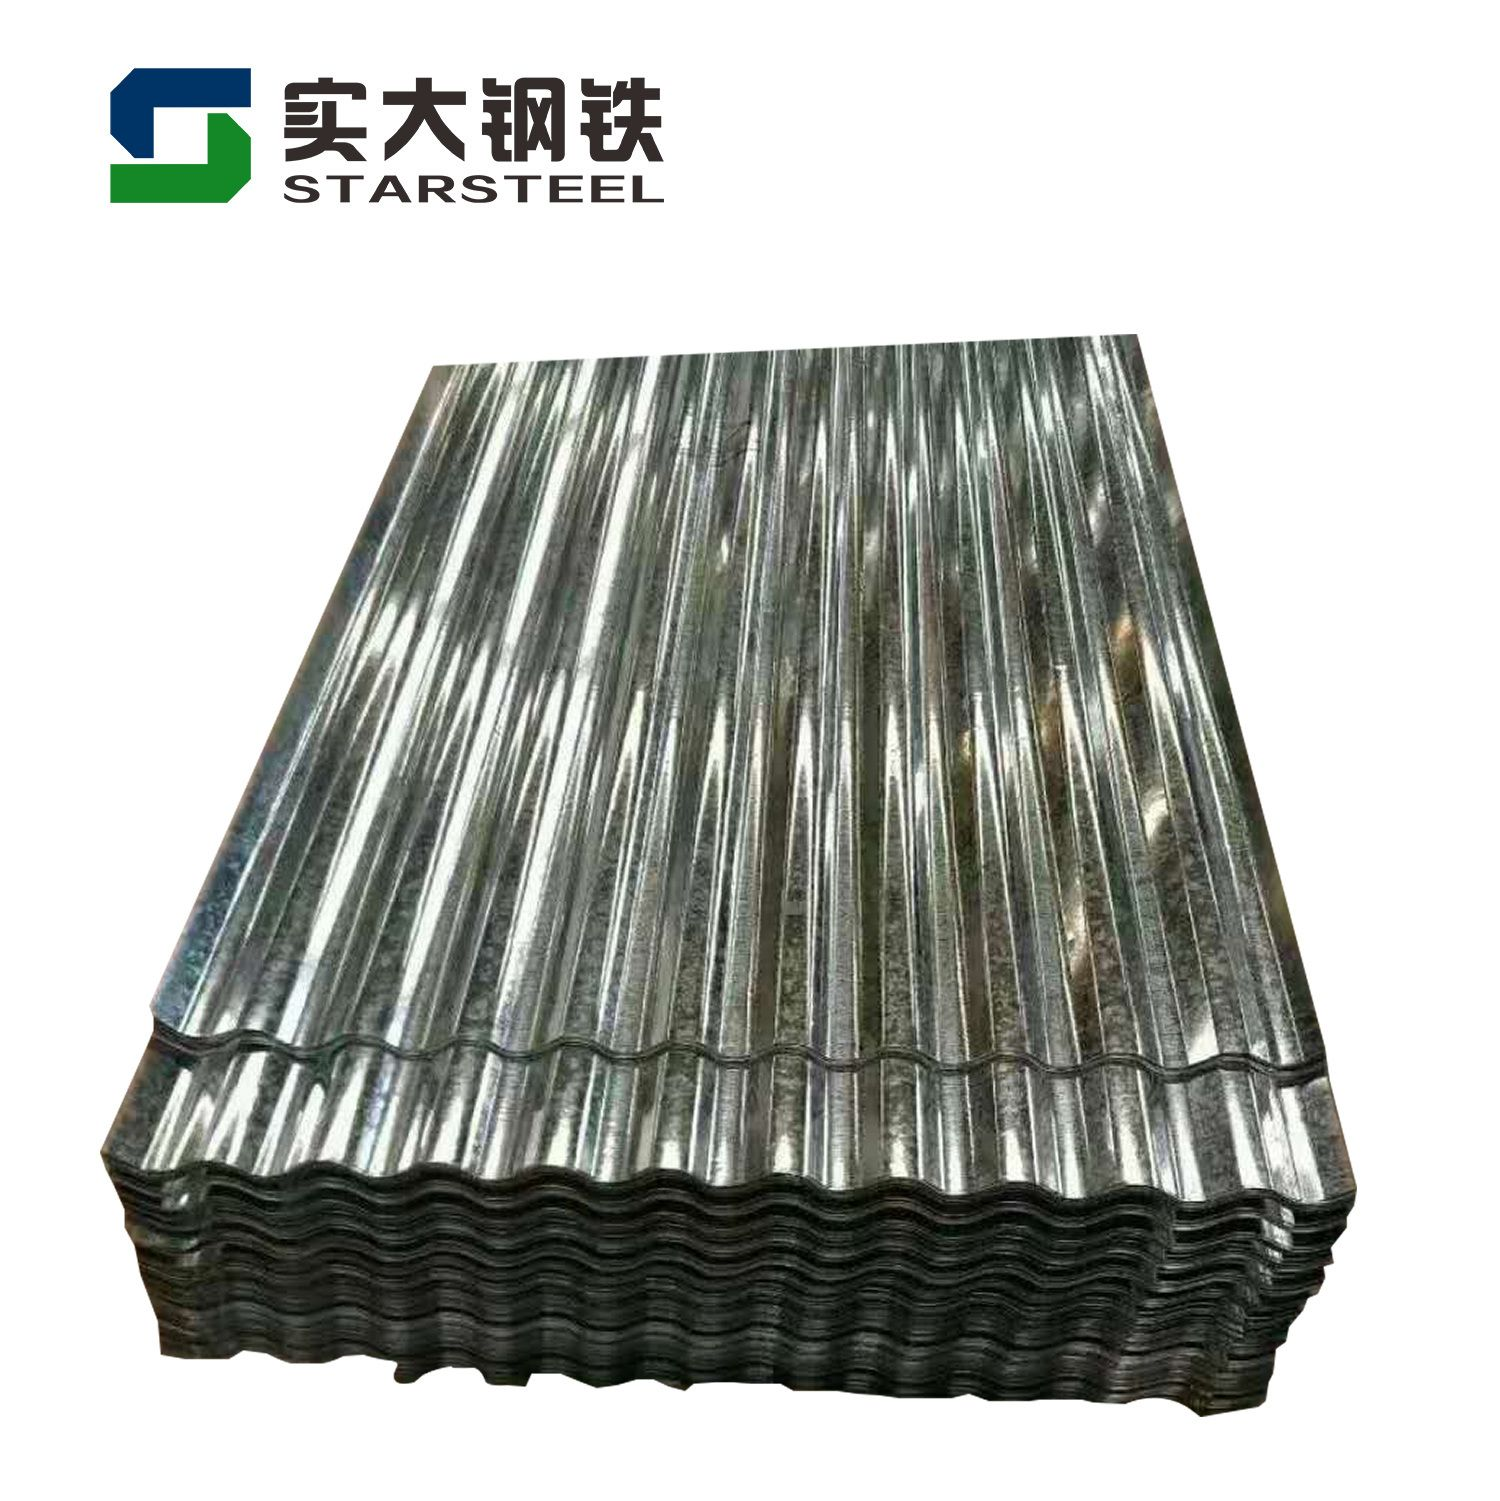 Coating For Galvanized Steel Roof In 2020 Corrugated Steel Sheets Steel Roof Panels Galvanized Steel Sheet